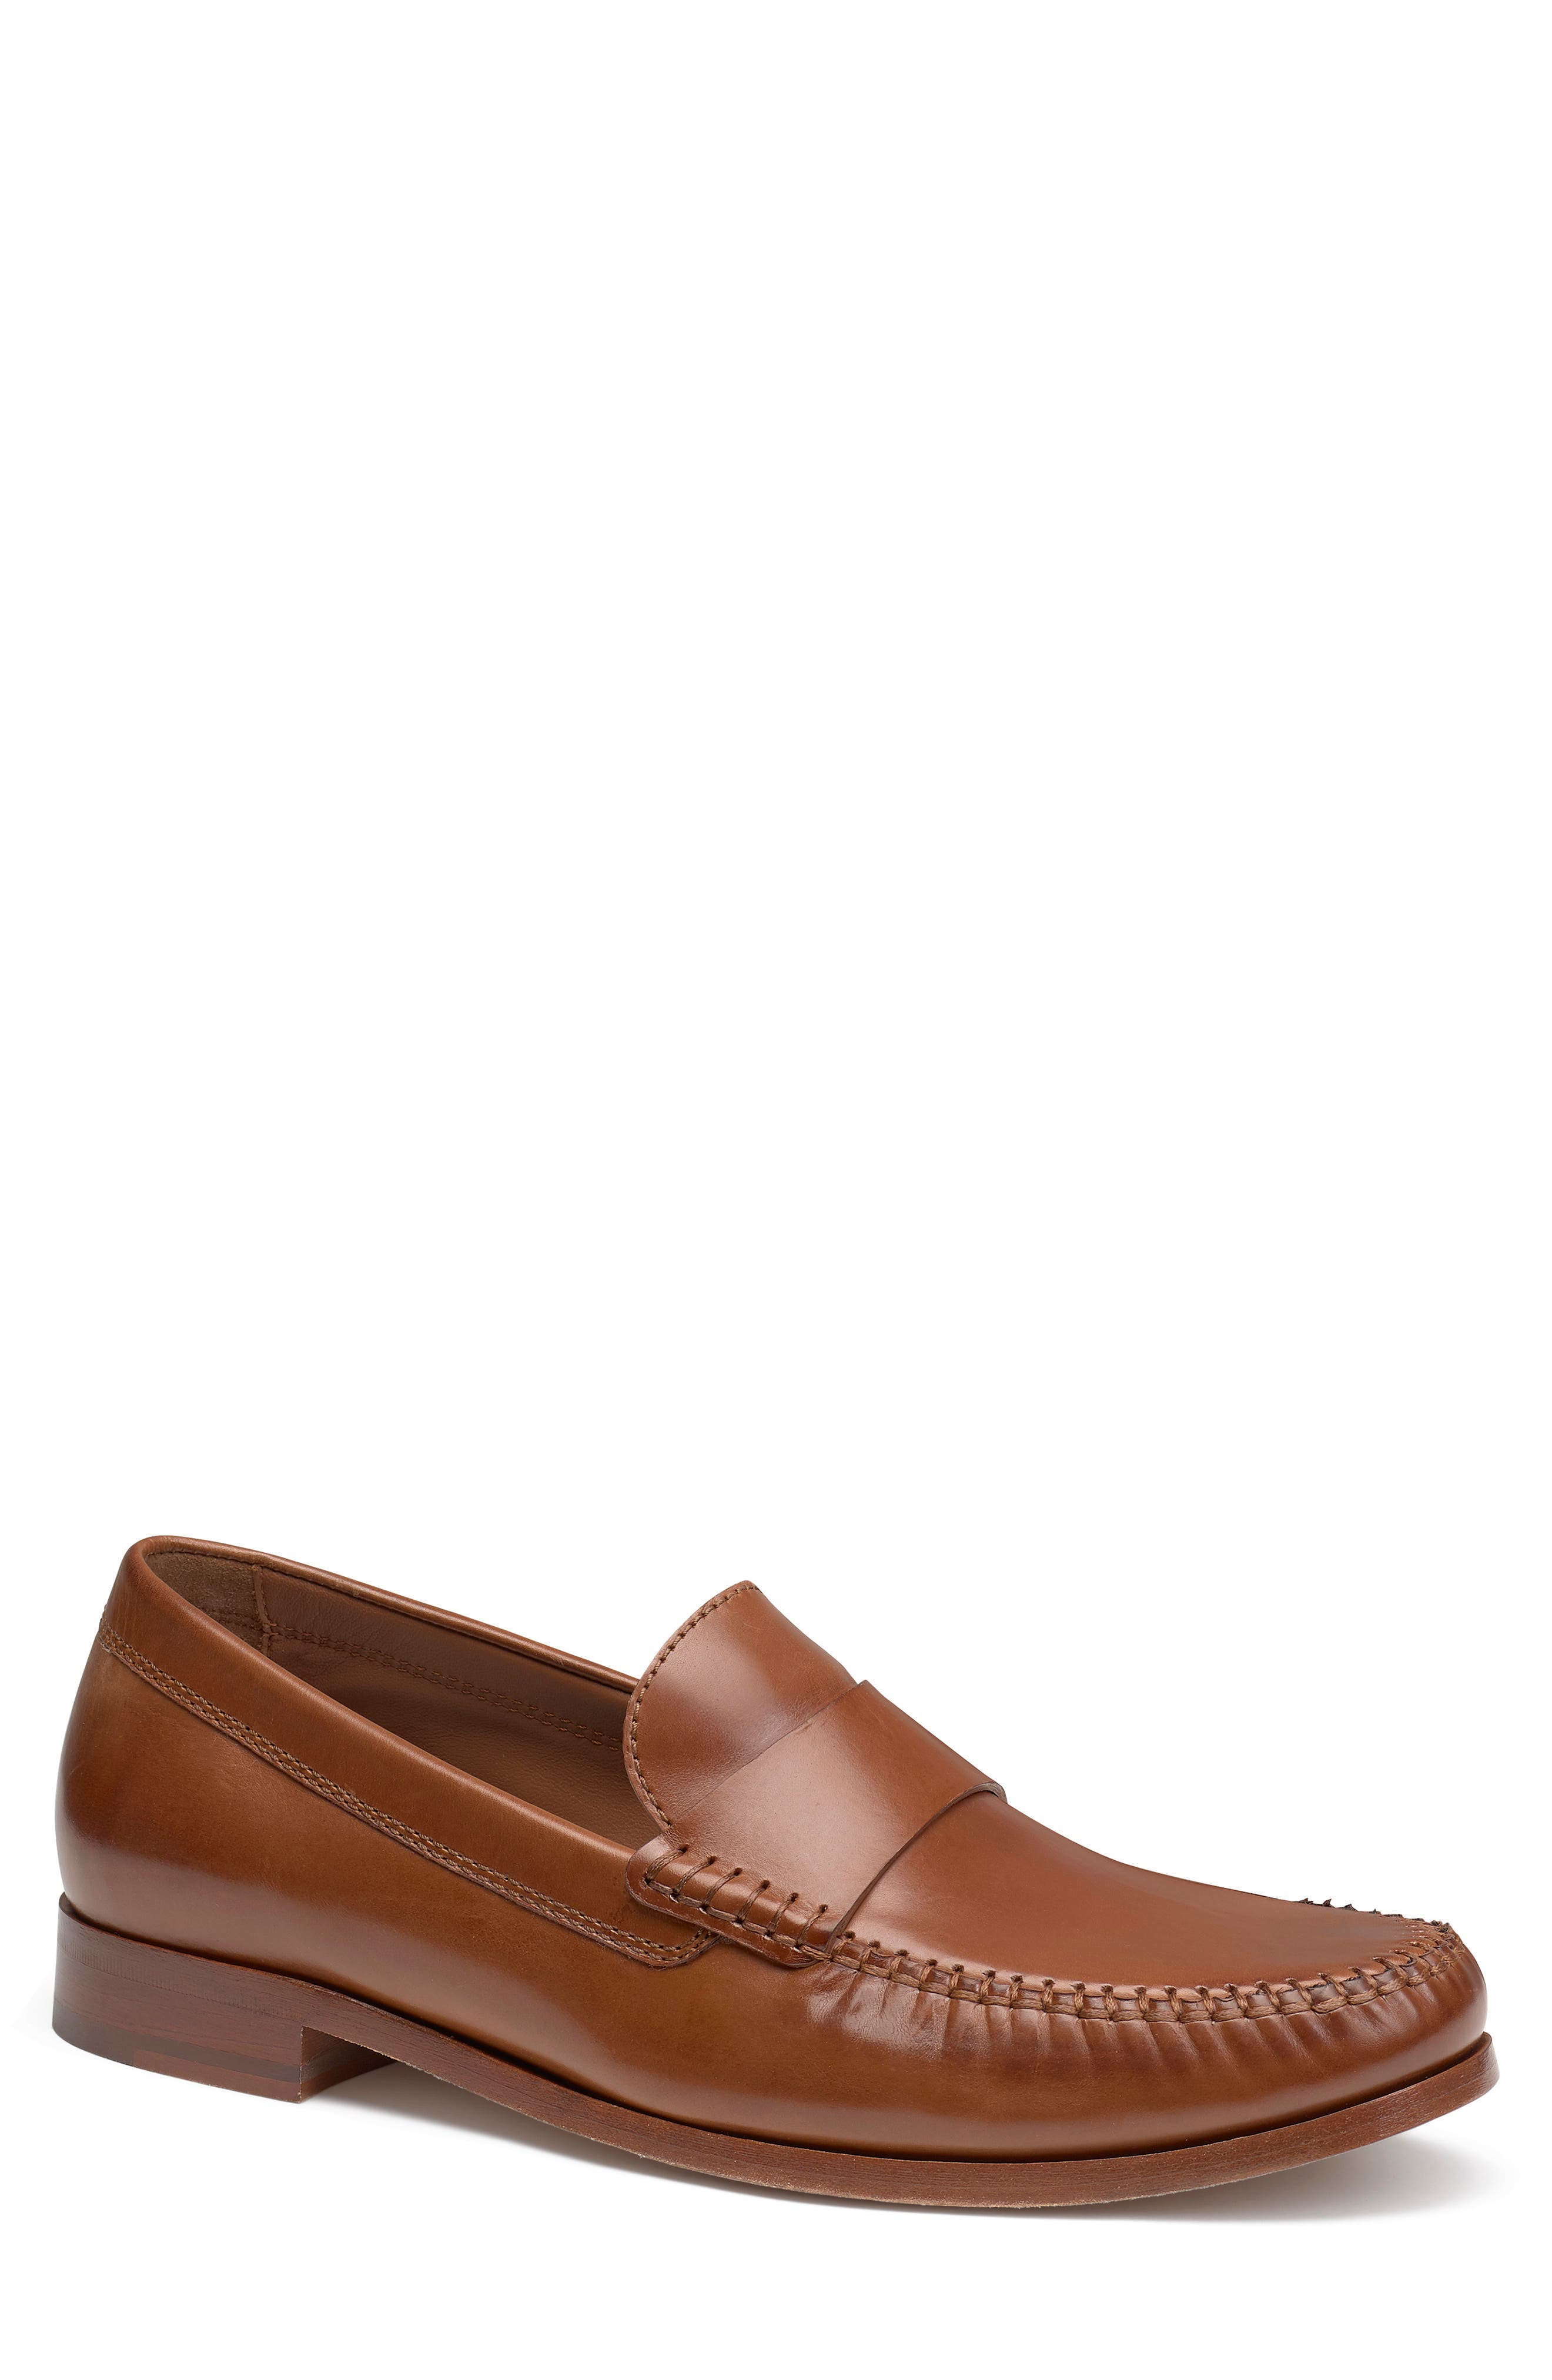 Image of Trask Sutton Penny Loafer